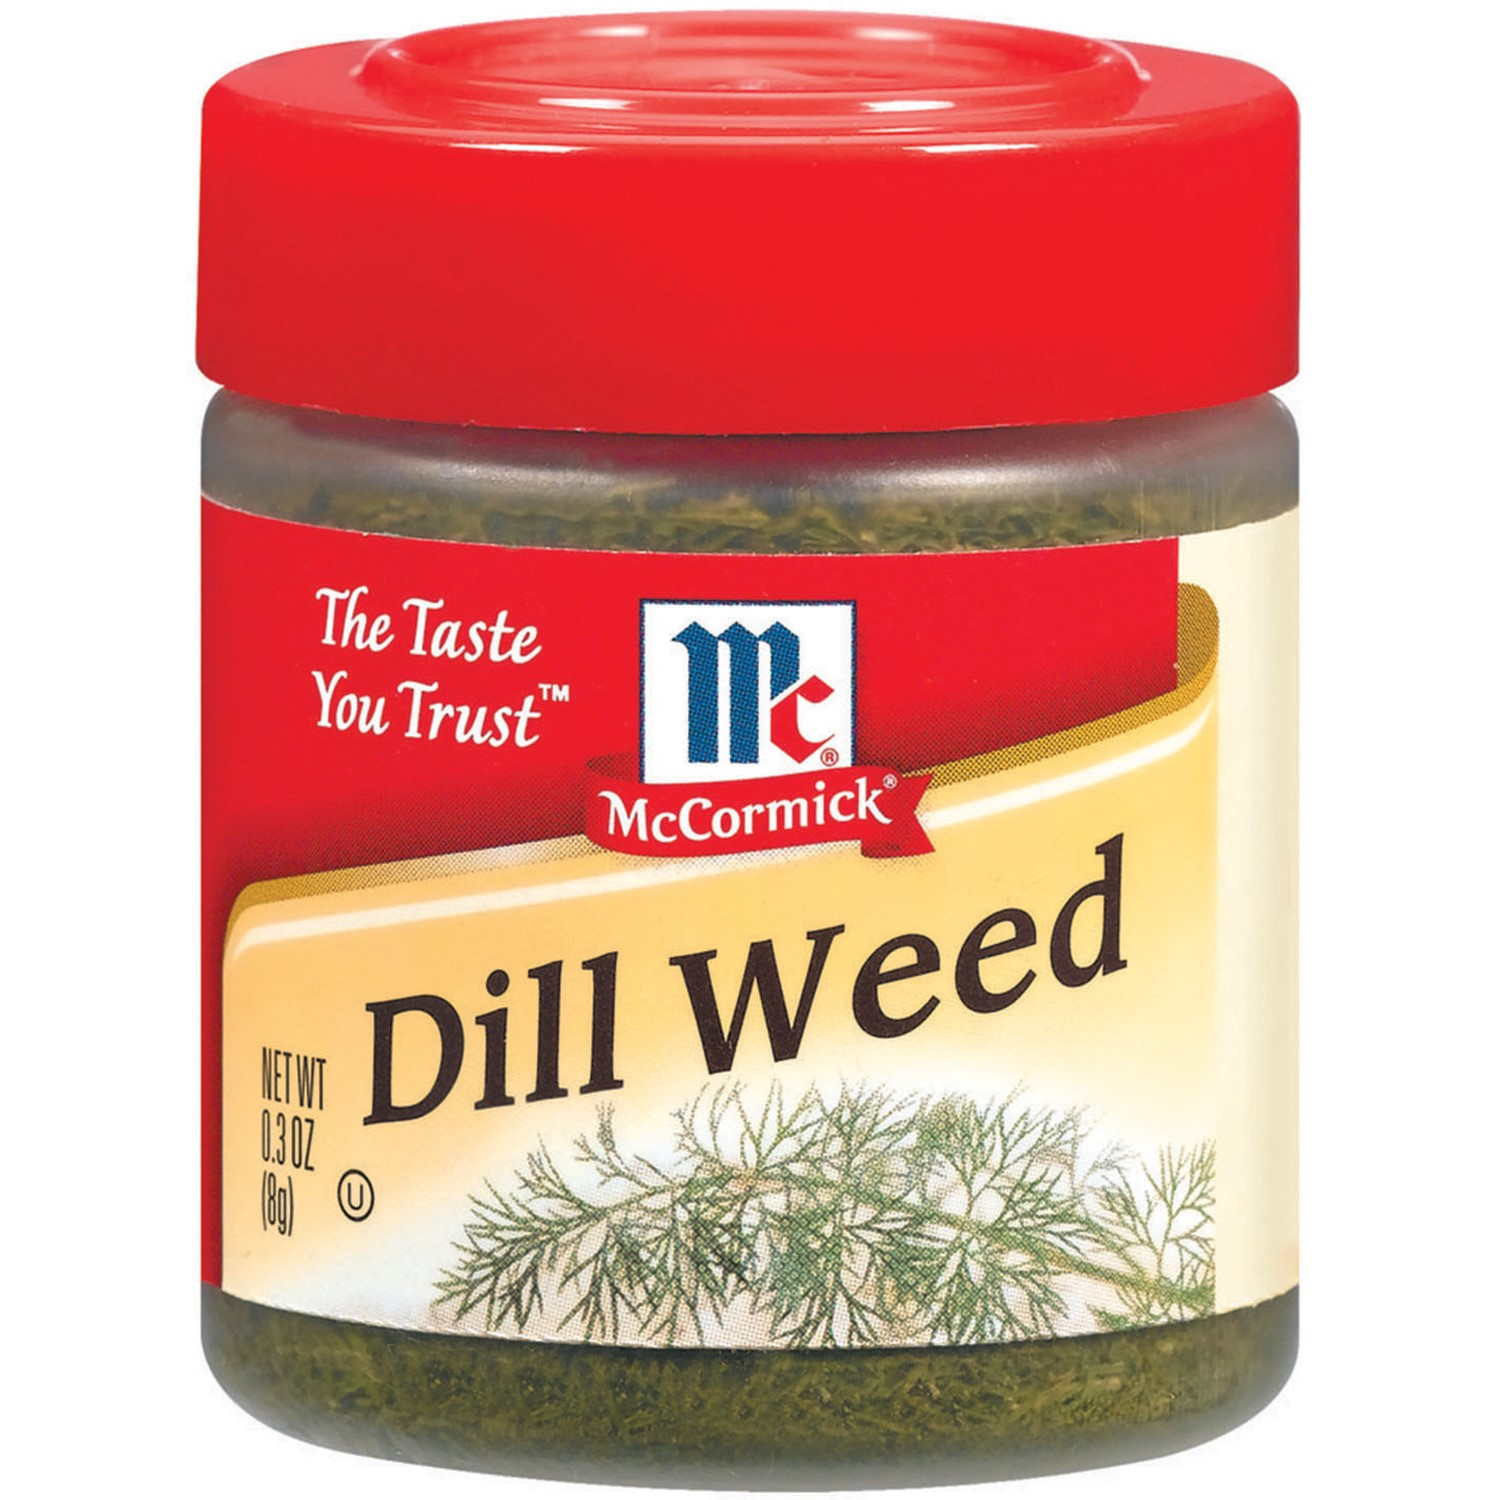 (2 Pack) McCormick Dill Weed, 0.3 Oz